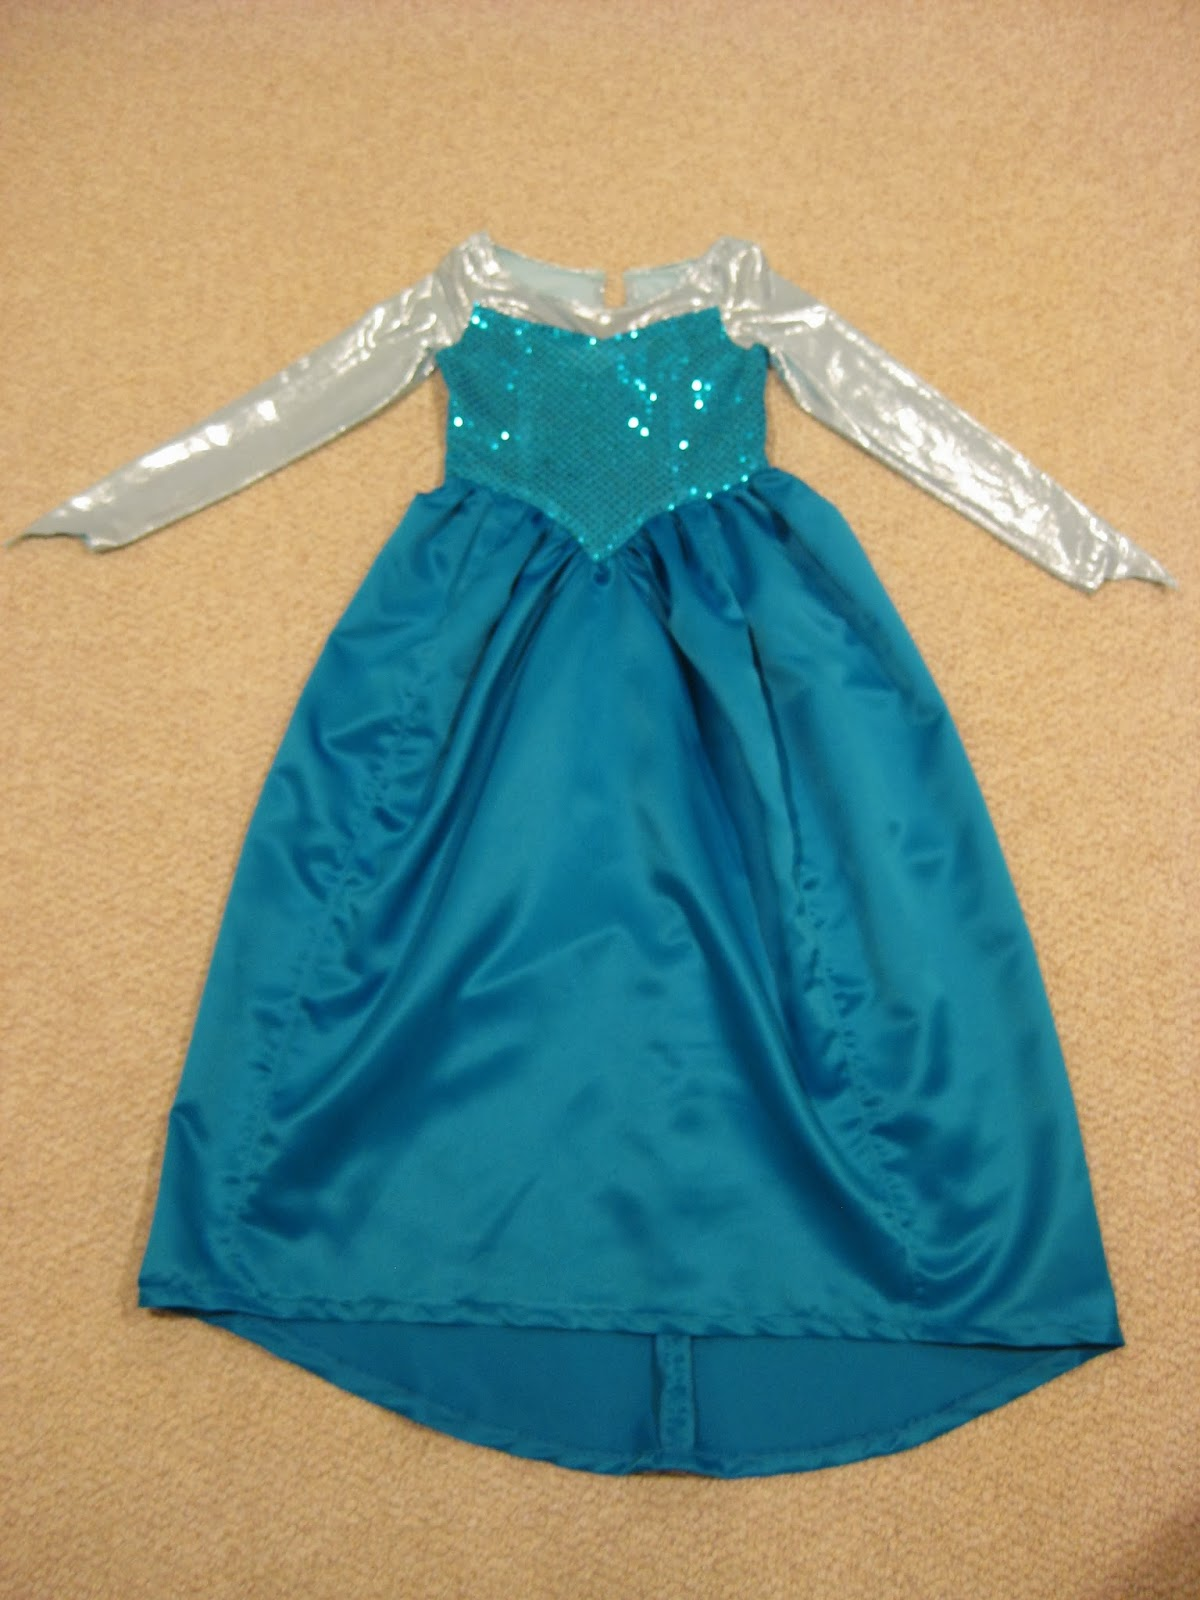 Gracehepburn Designs Designing An Elsa Costume From The